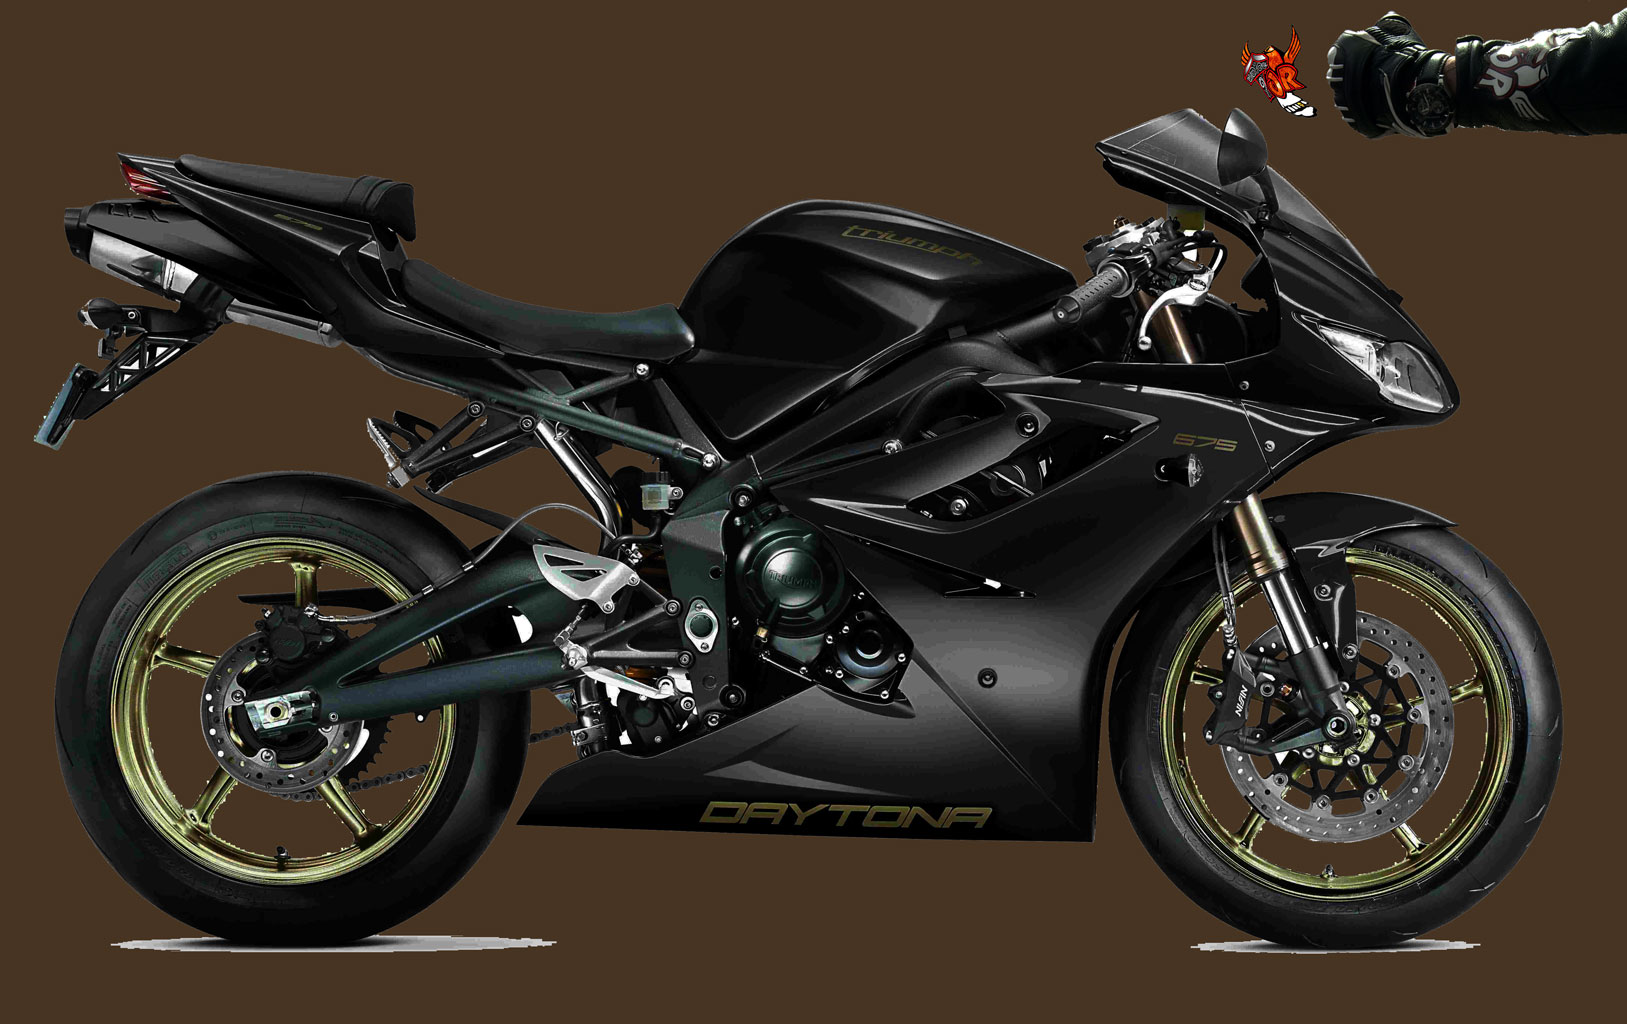 2012 triumph daytona 675 moto zombdrive com. Black Bedroom Furniture Sets. Home Design Ideas